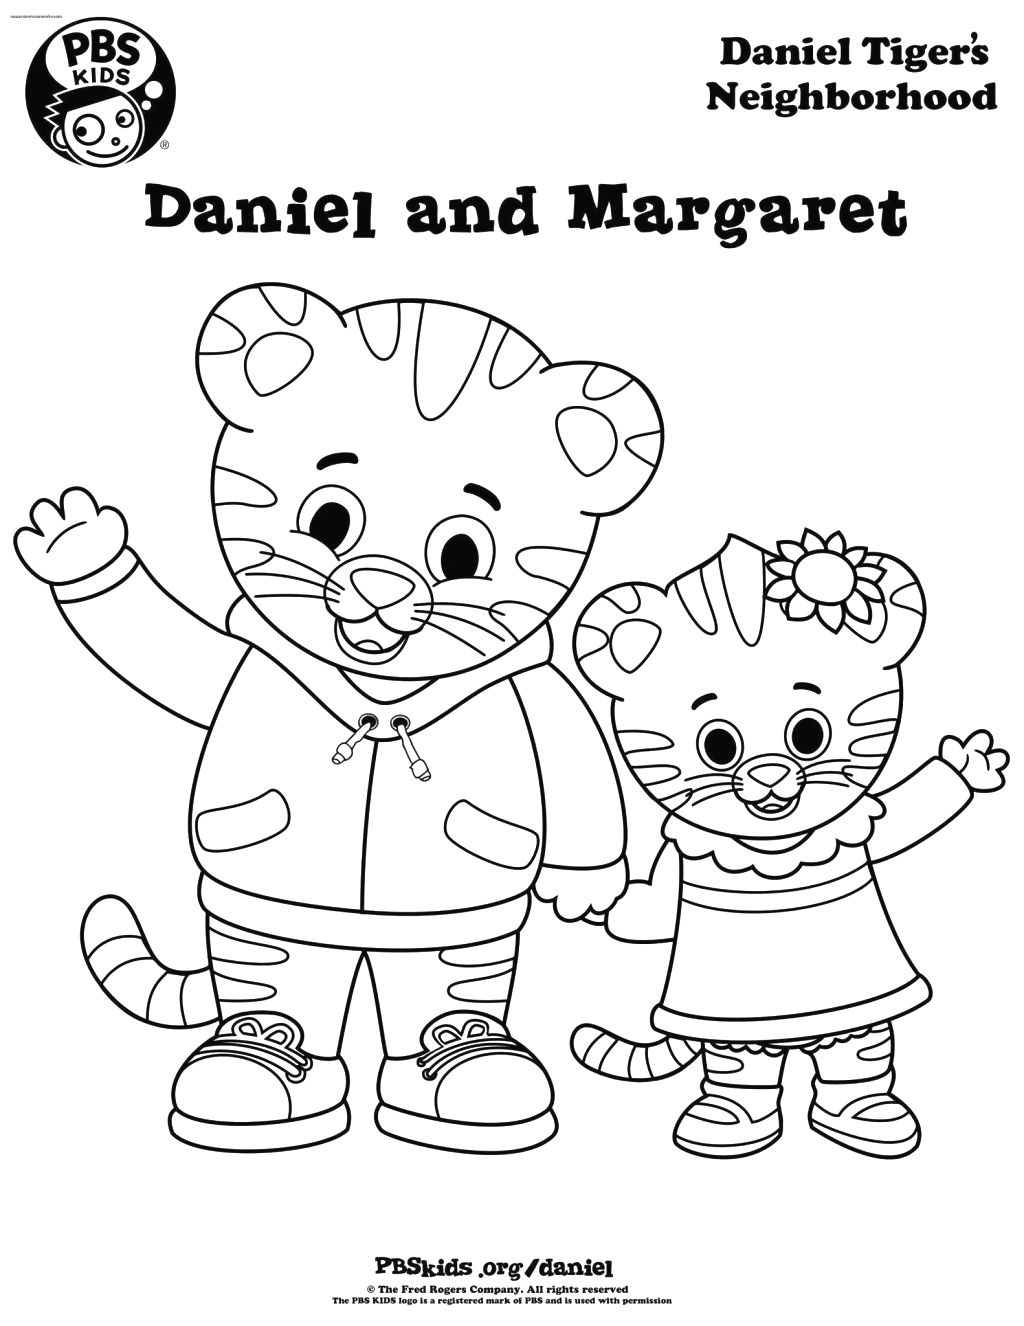 daniel tiger coloring pages printable - photo#2